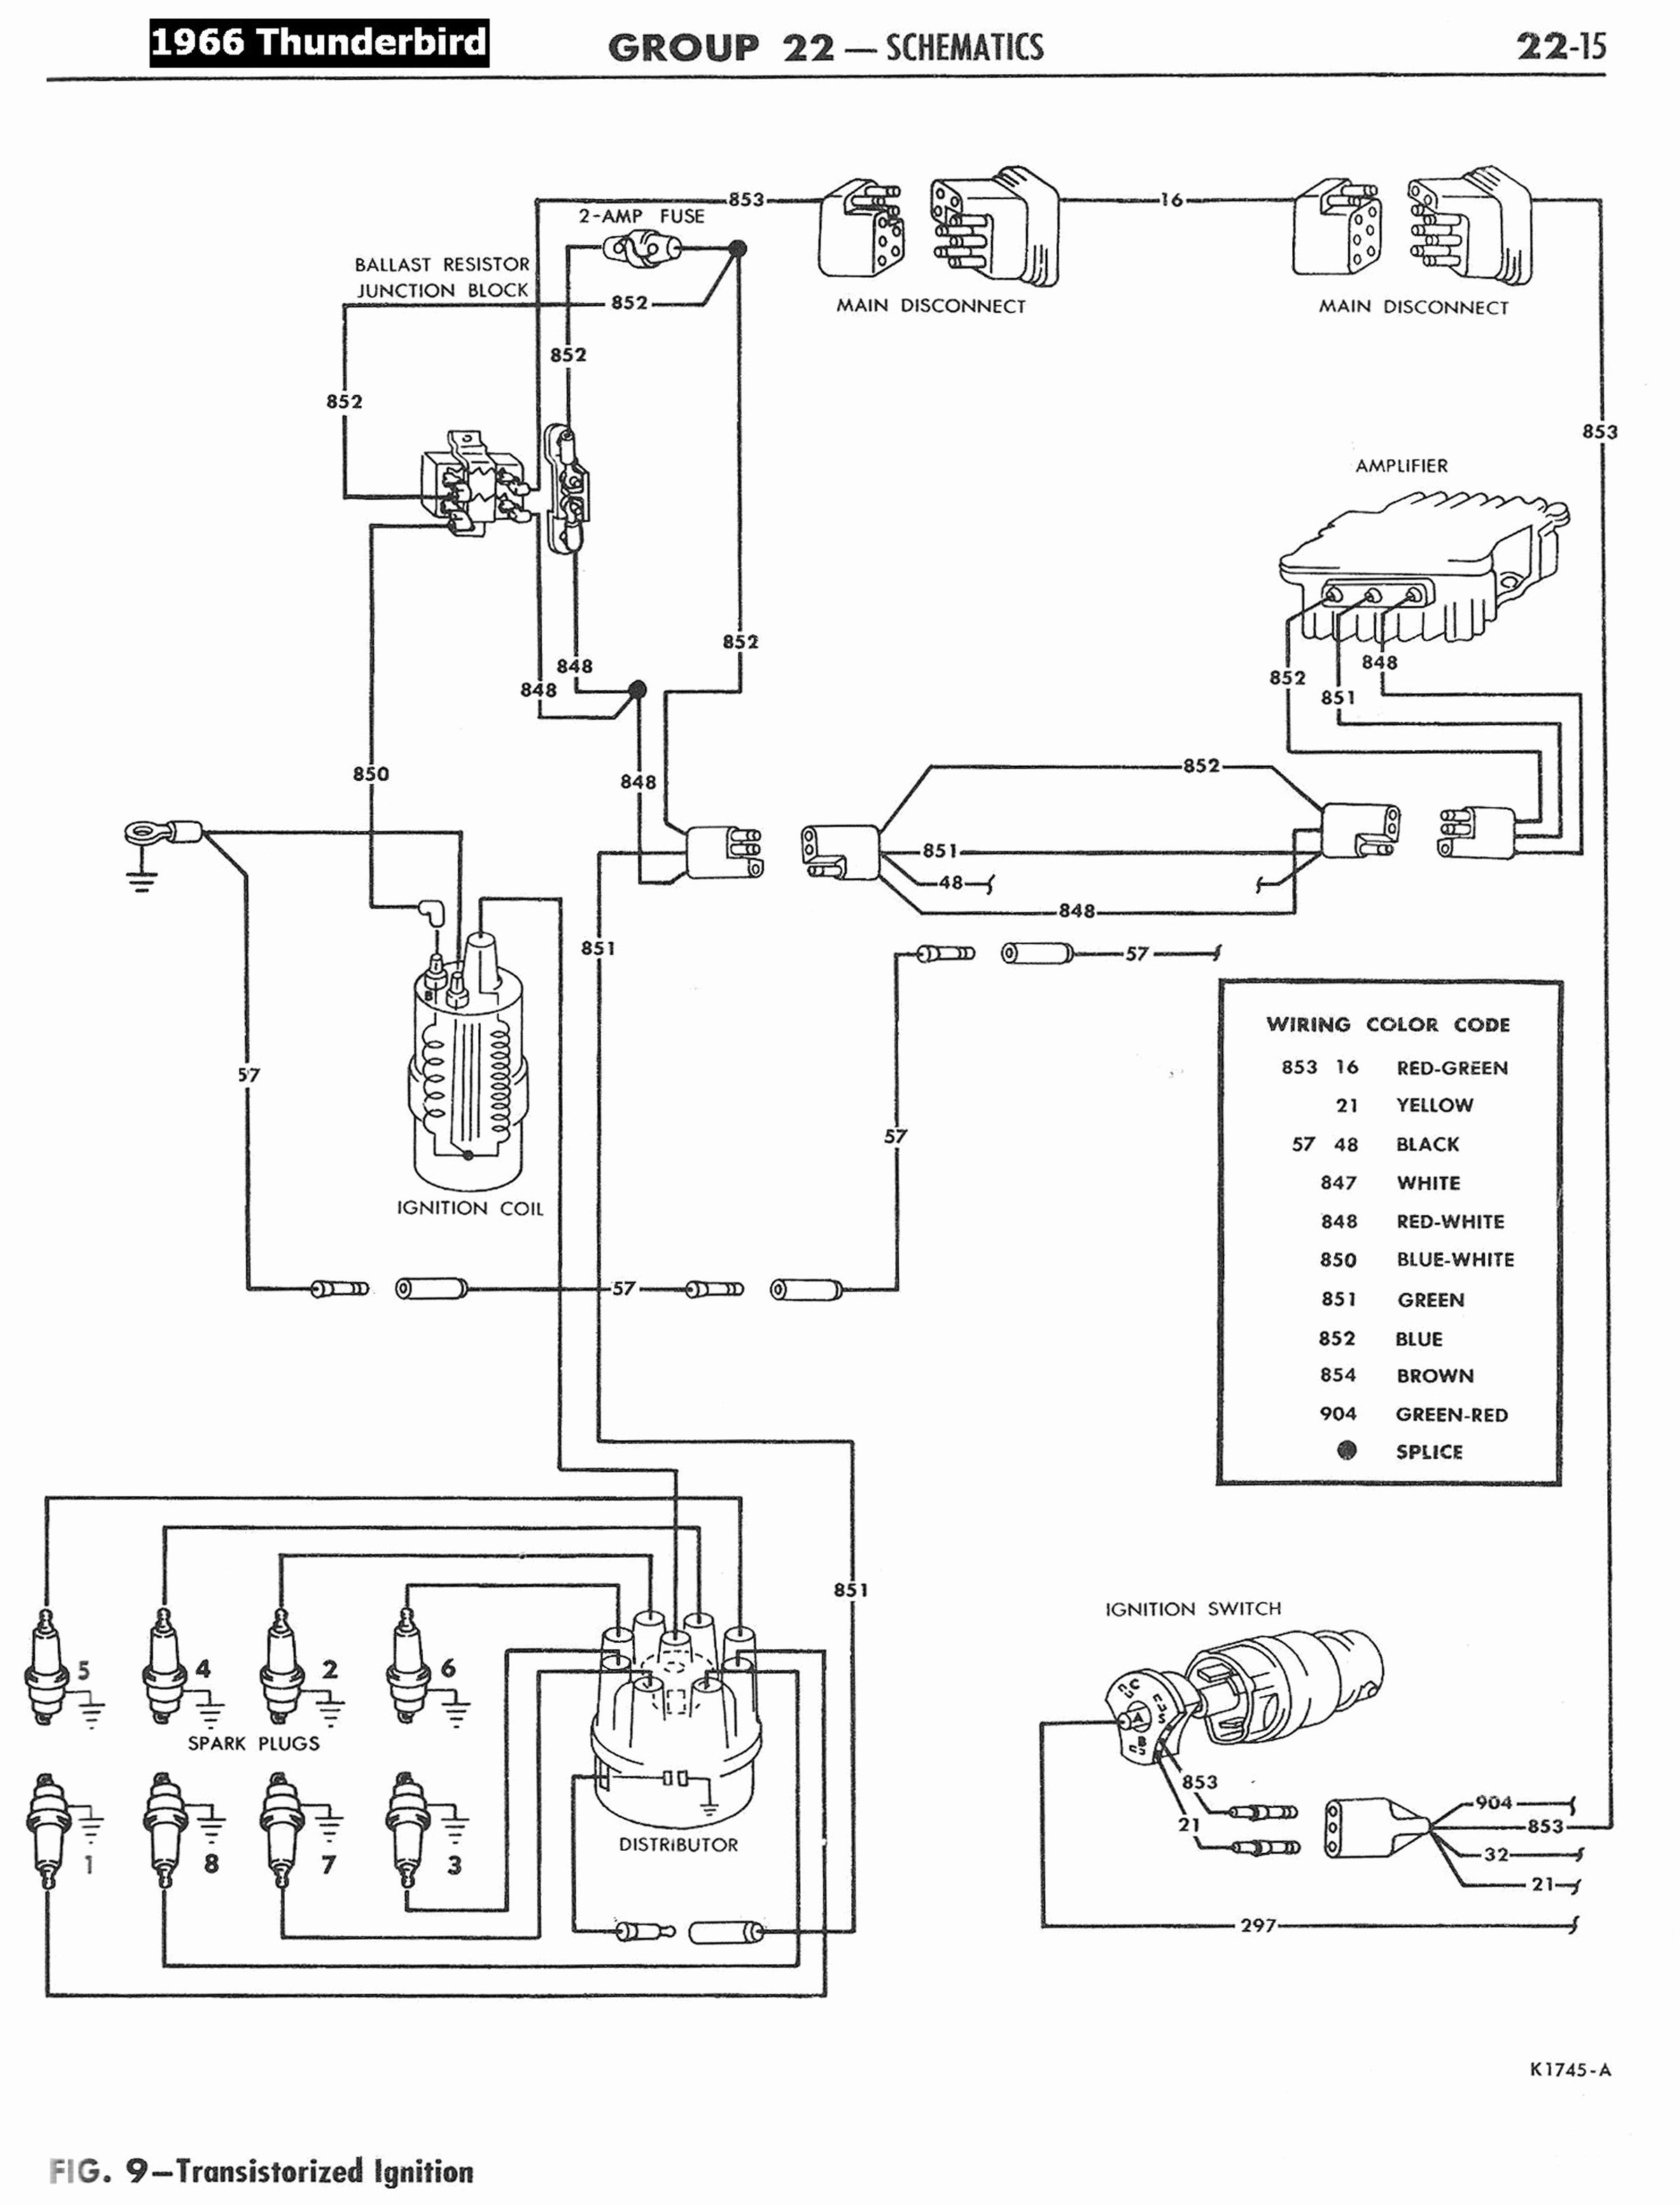 1995 honda civic ac wiring diagram elitech stc 1000 unique image